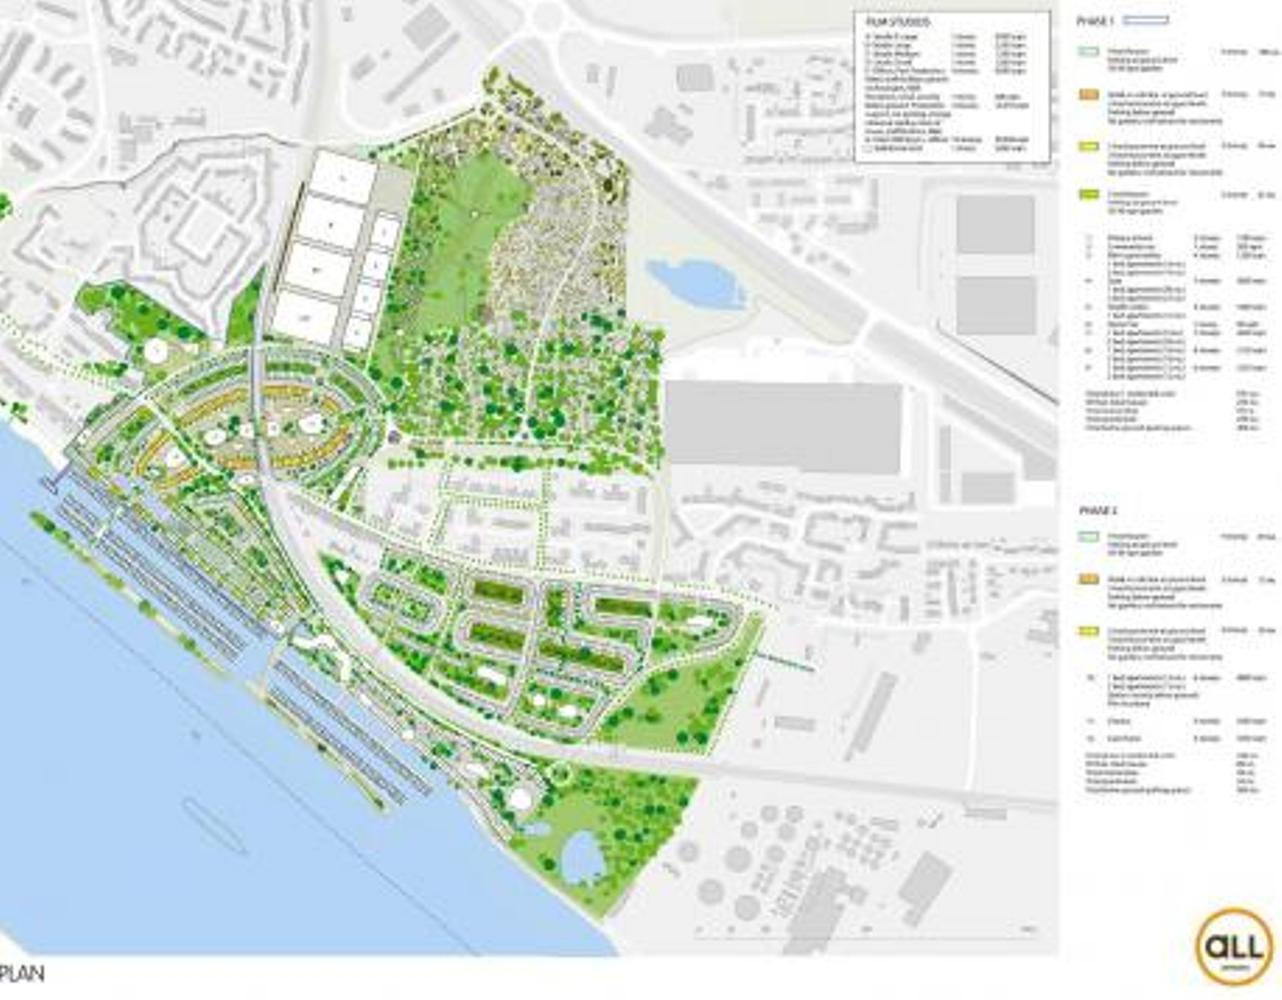 The plans - ambitious proposals for the regeneration of Purfleet